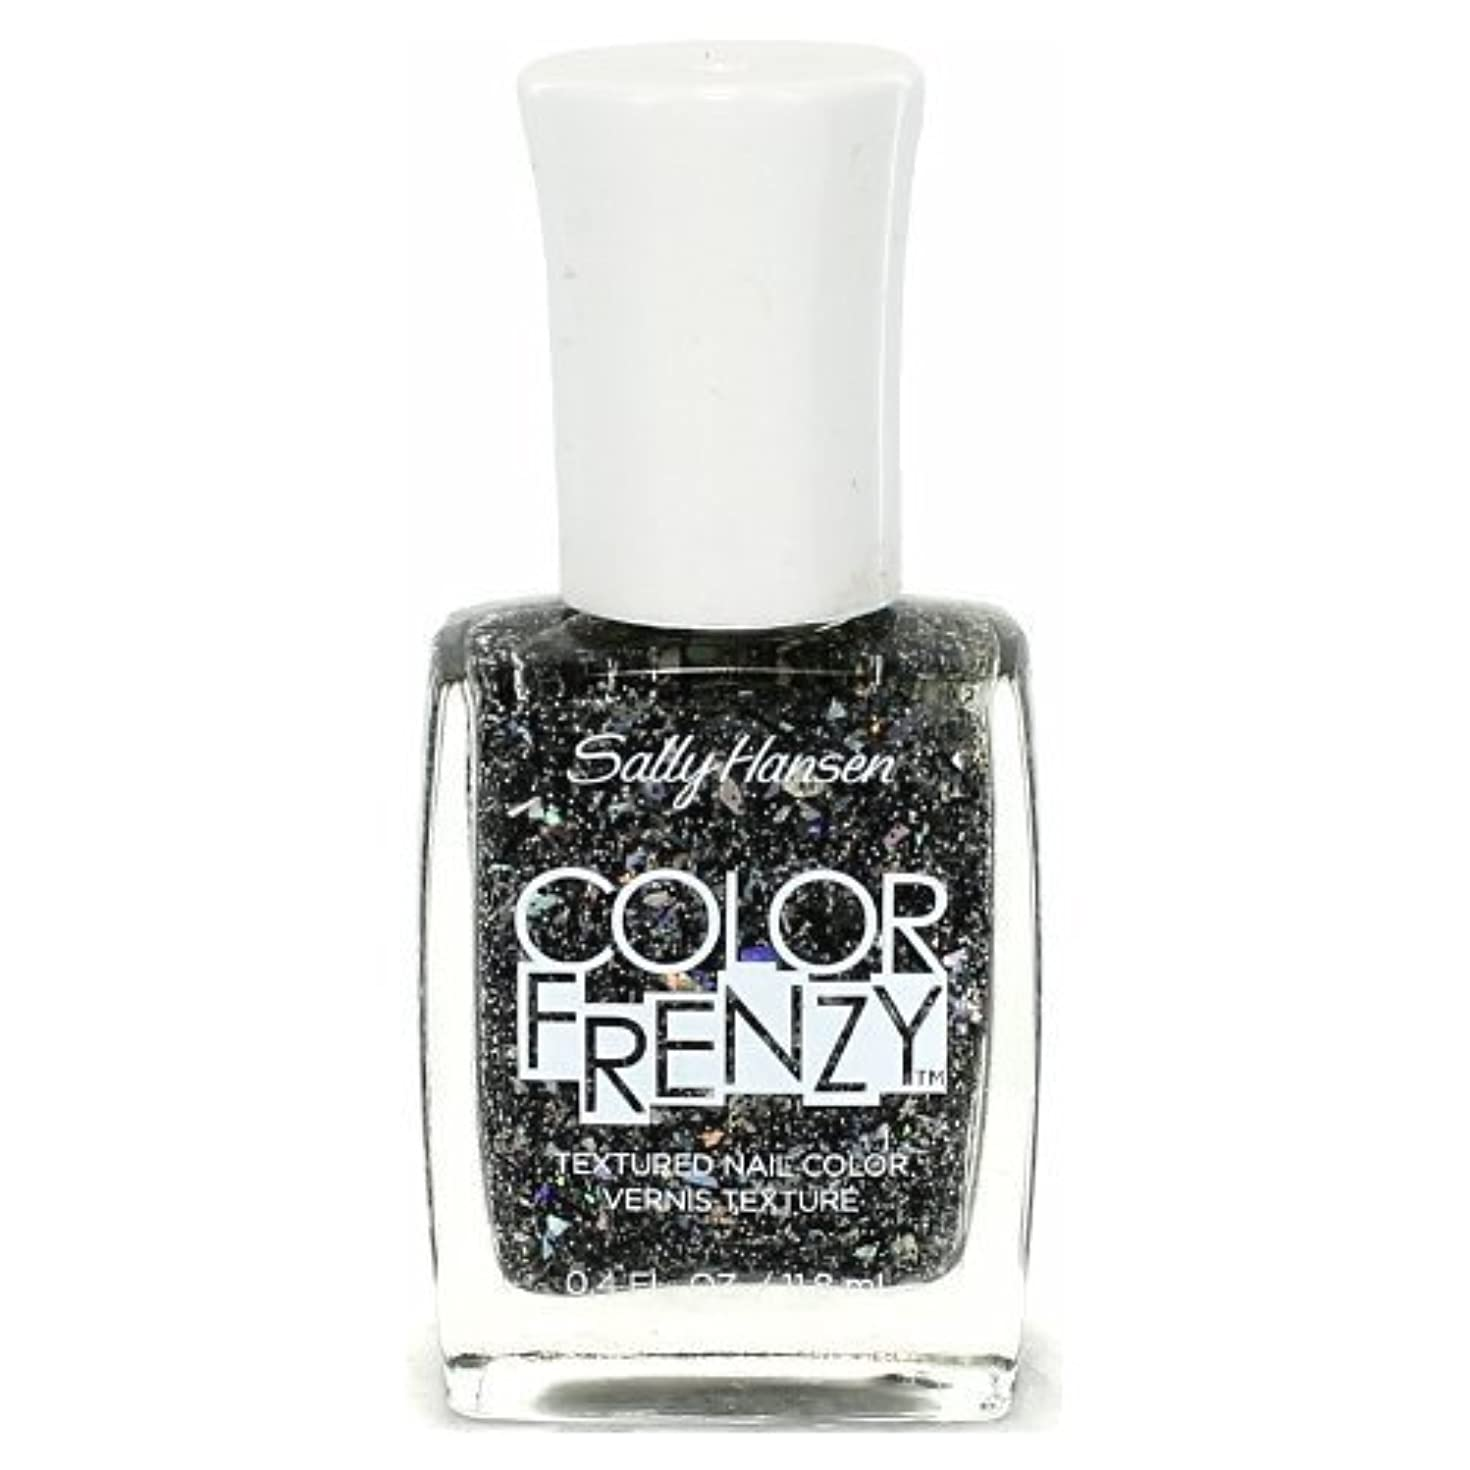 SALLY HANSEN Color Frenzy Textured Nail Color - Spark & Pepper (並行輸入品)